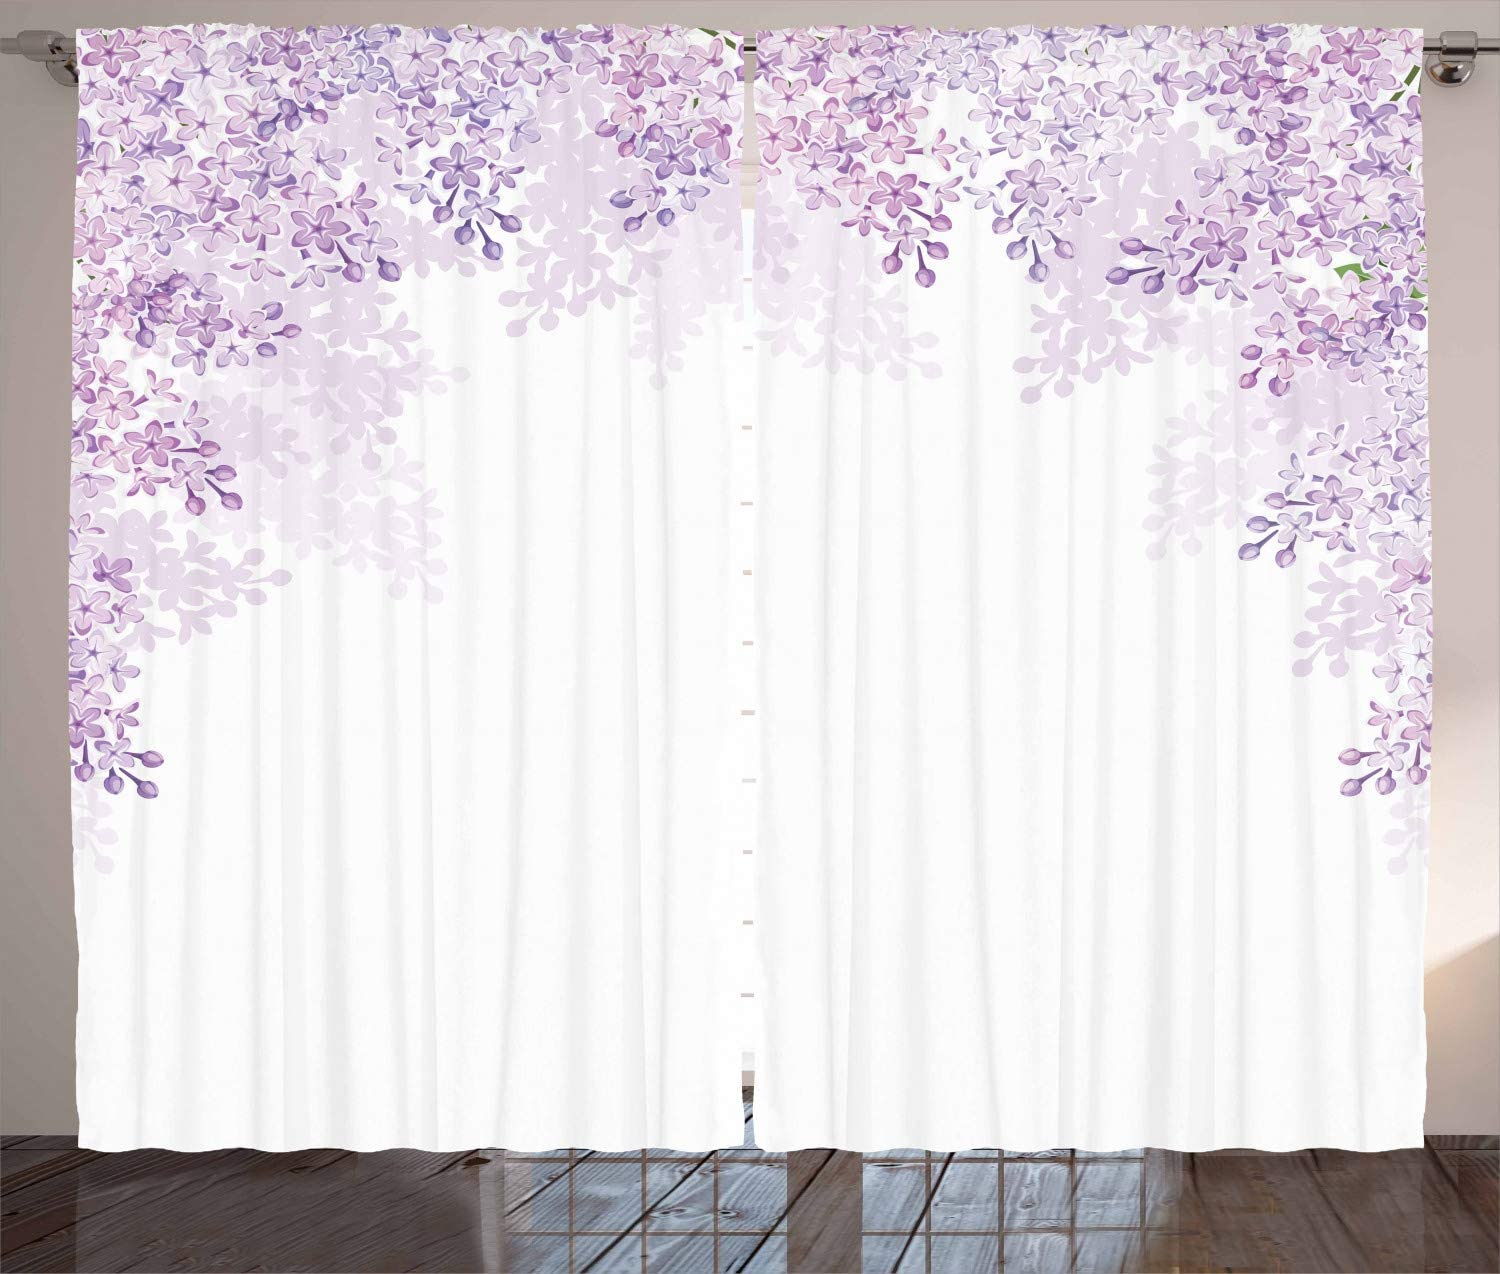 """Ambesonne Flower Curtains, Framing Lilac Flowers in Blossom Vernal Season Soothing Color Shades, Living Room Bedroom Window Drapes 2 Panel Set, 108"""" X 108"""", Lavender White"""